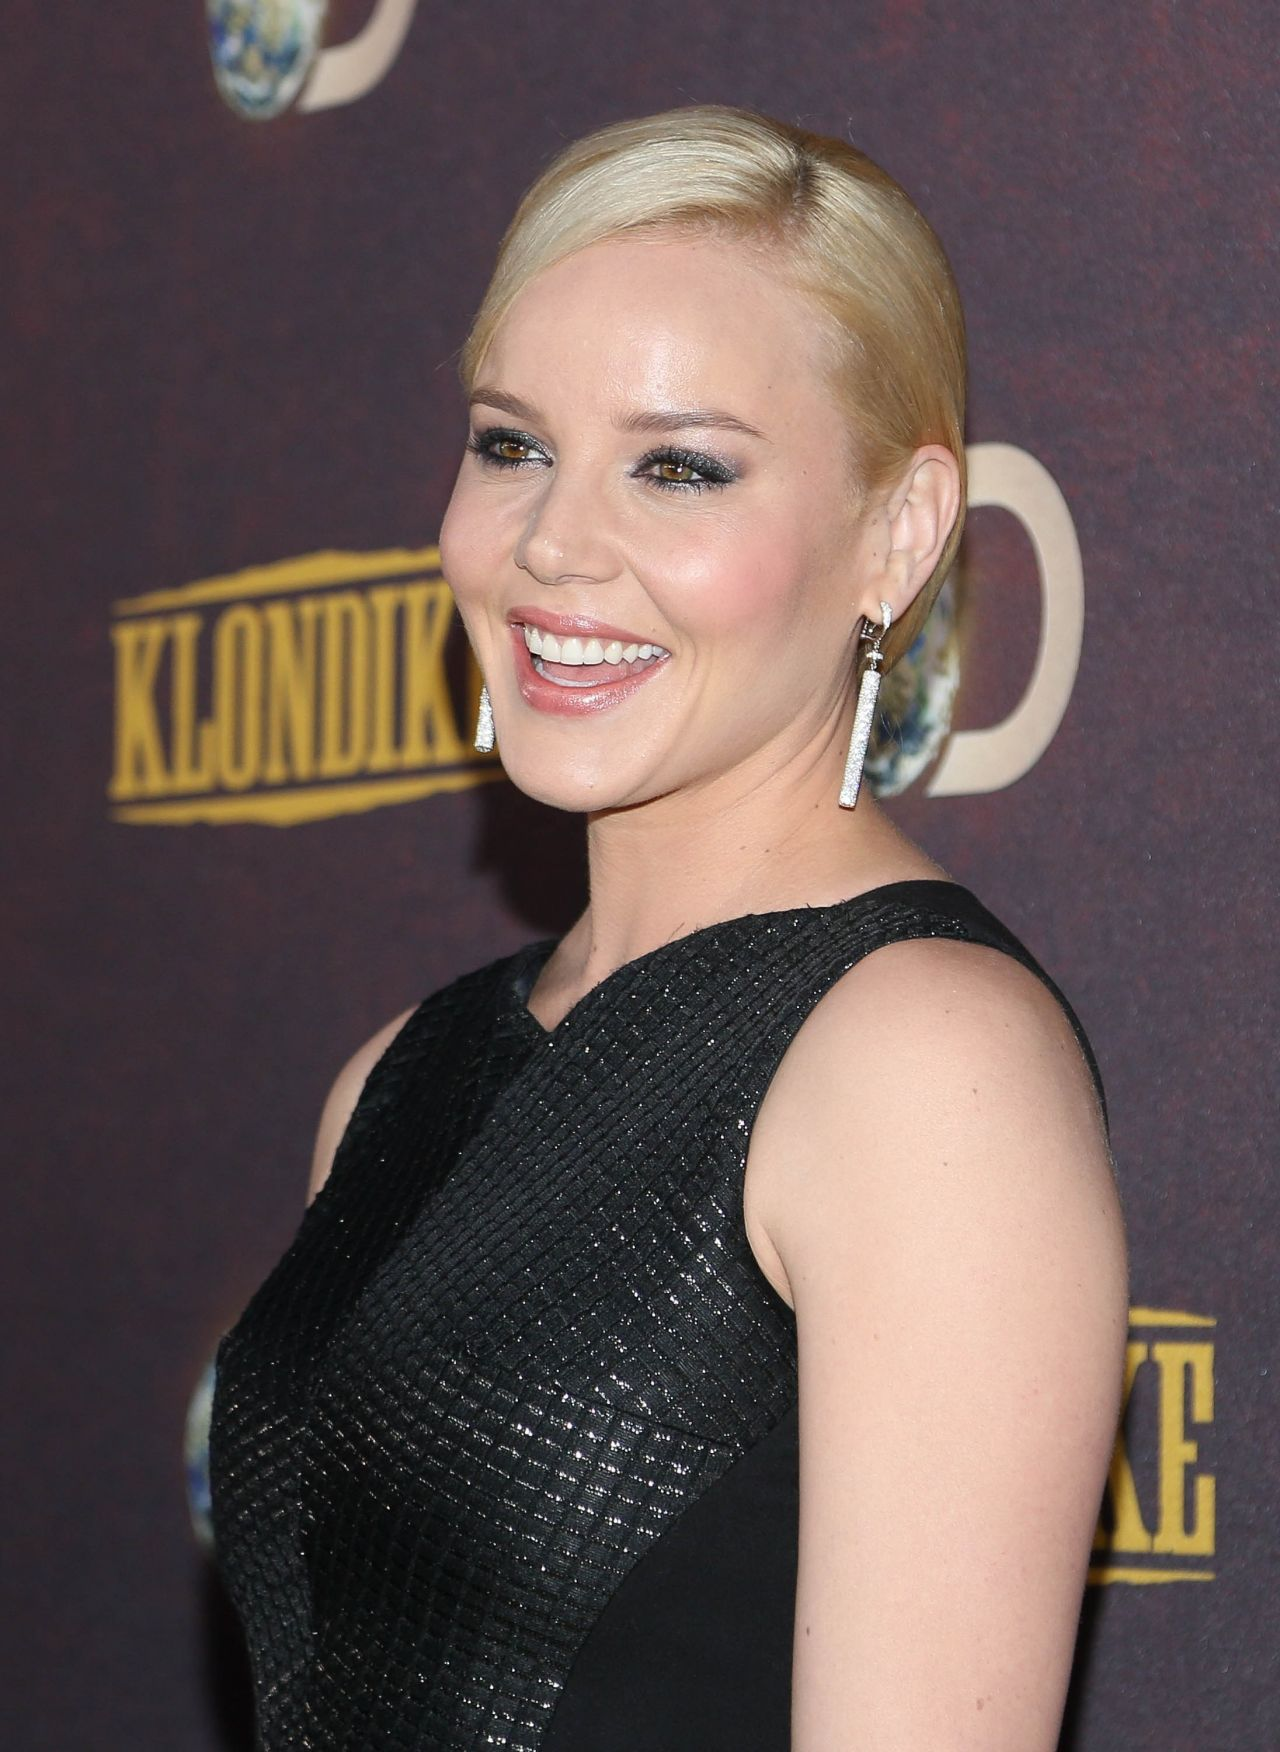 Abbie Cornish at Klondike Premiere in New York - January 2014